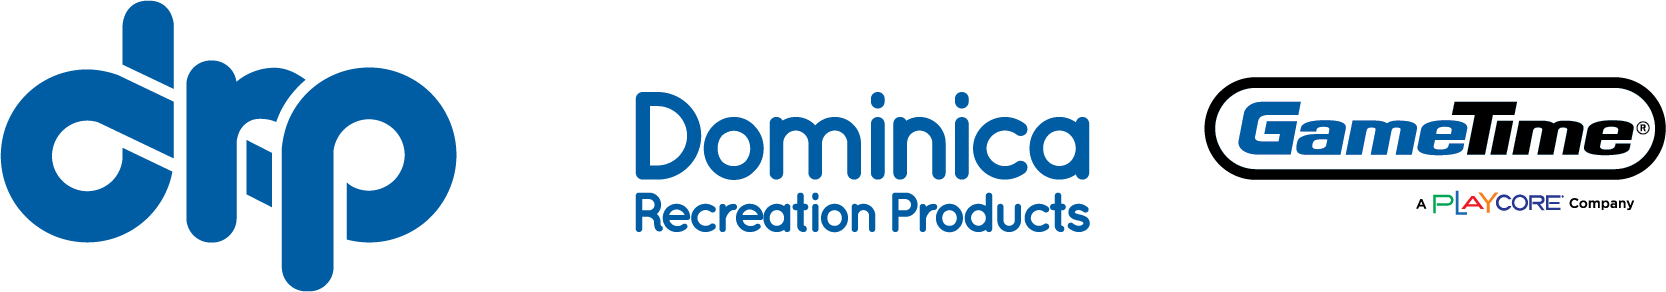 Dominica Recreation Products   GameTime